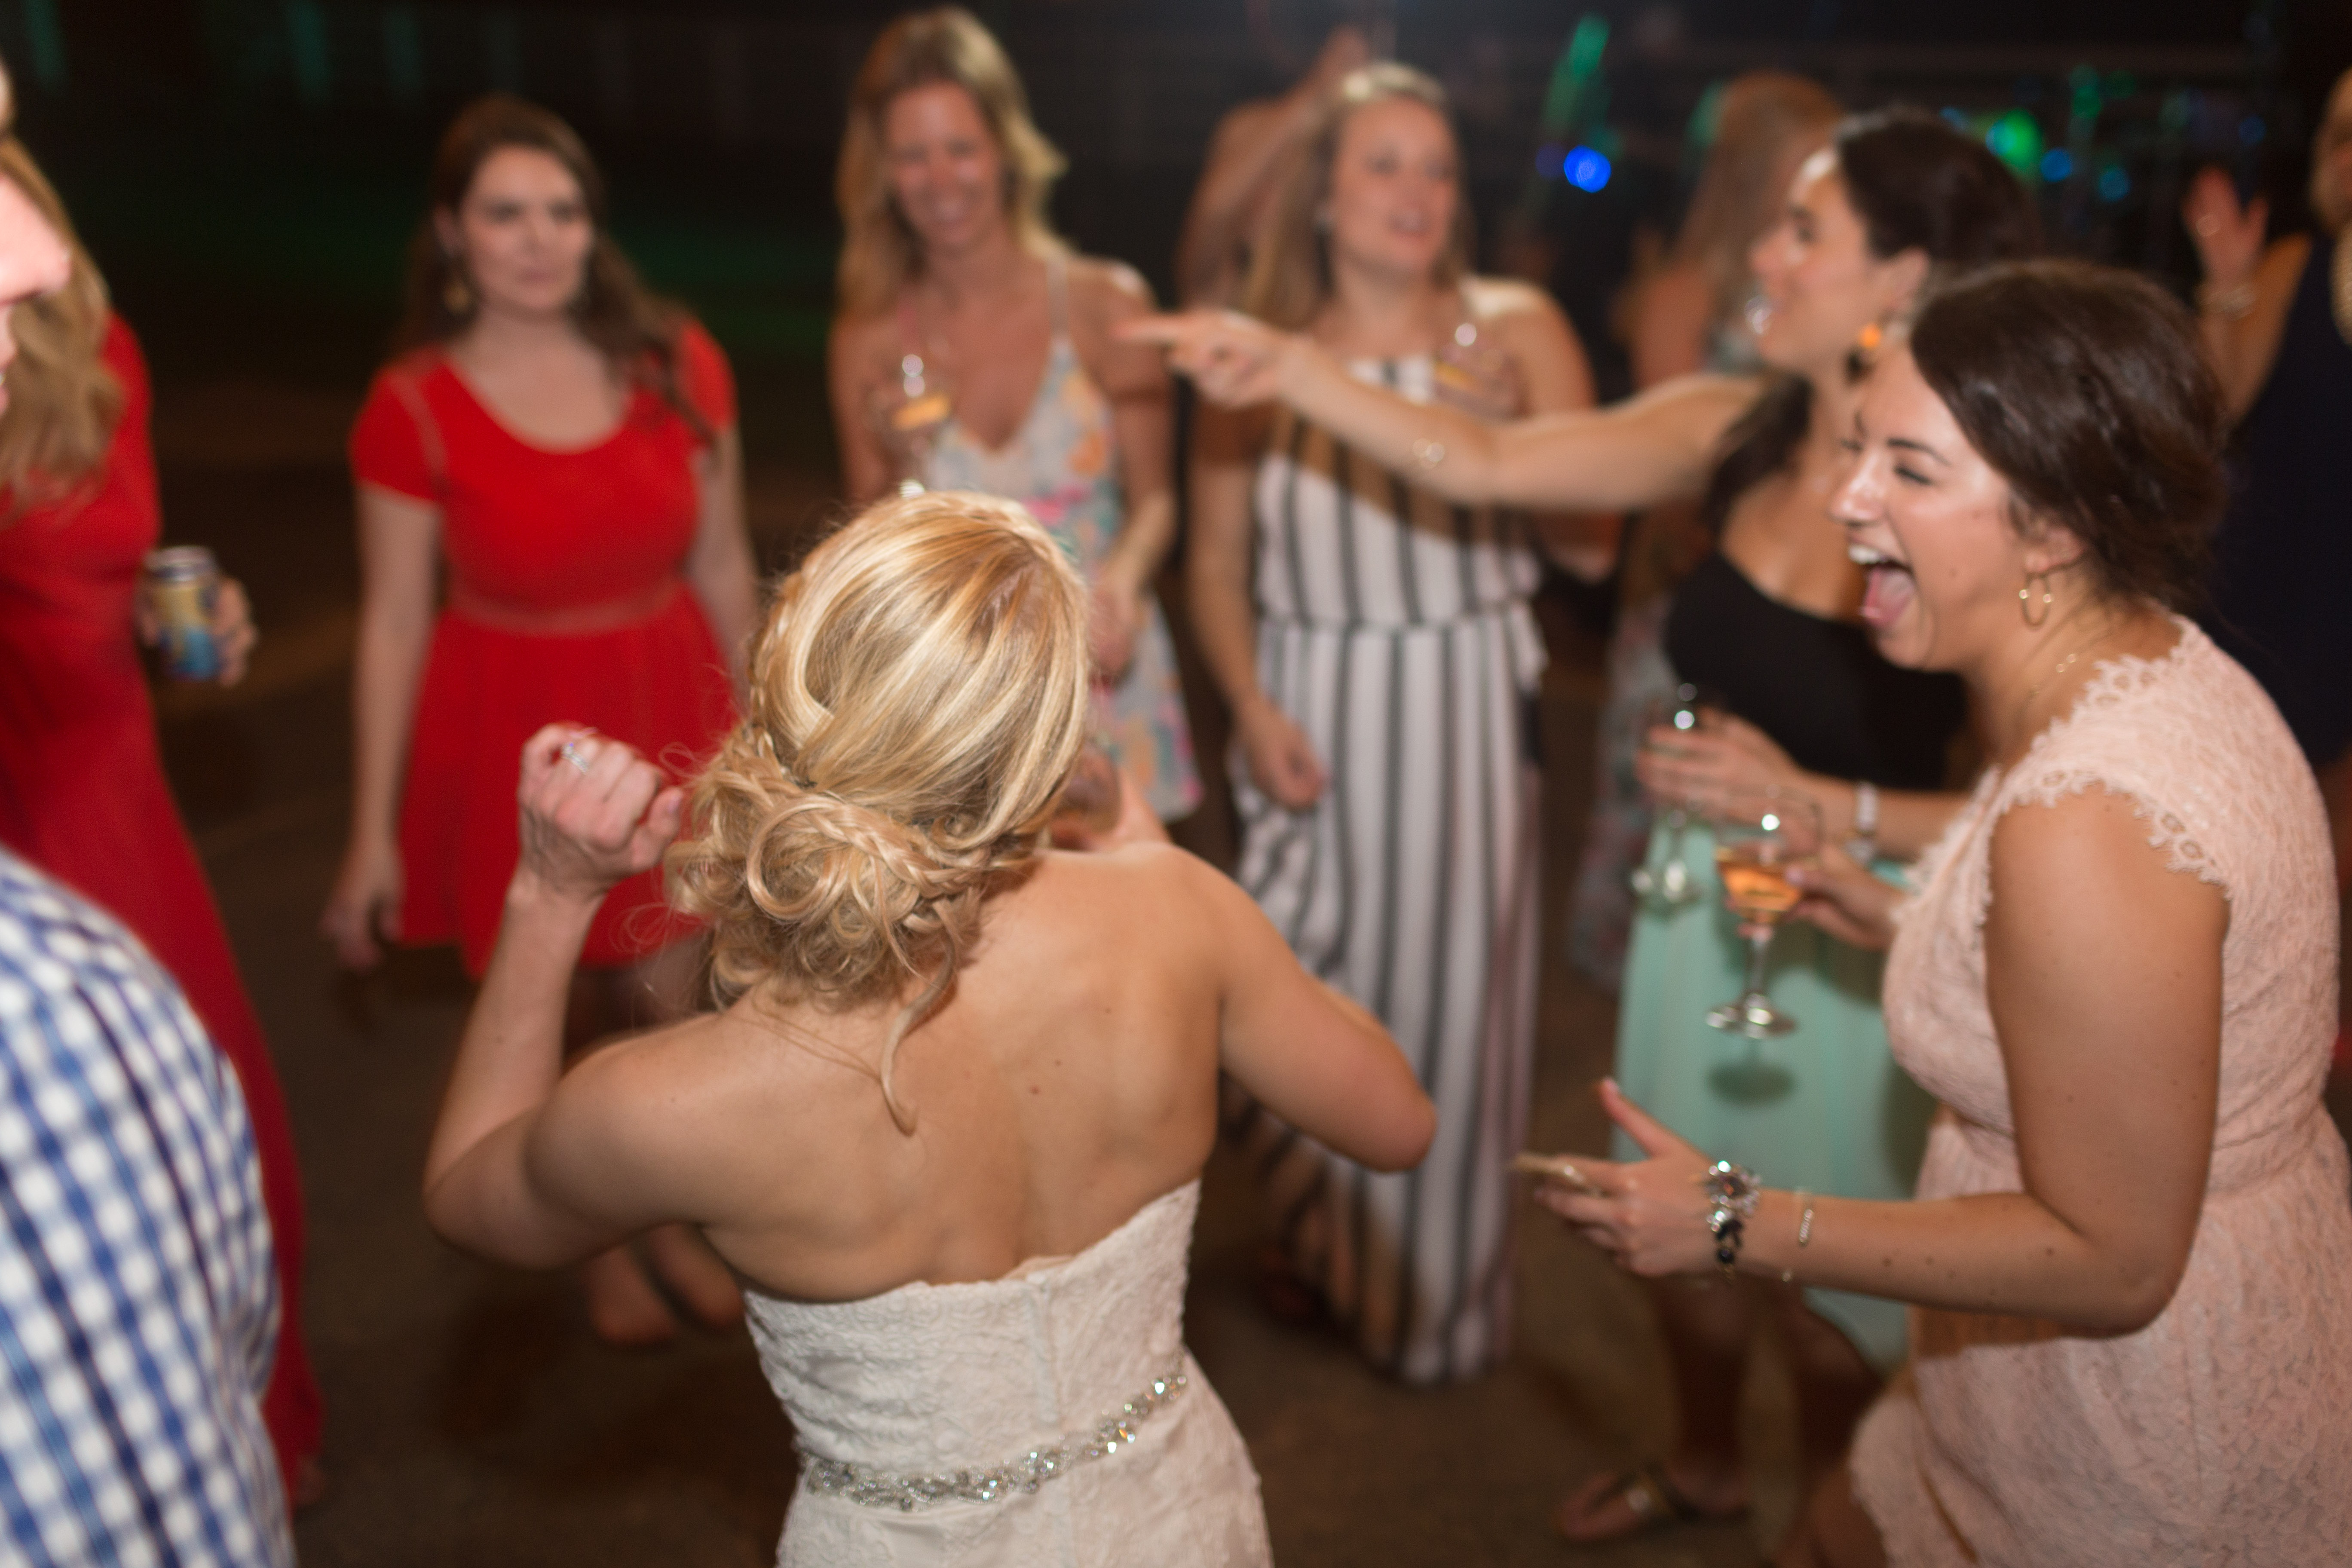 Finding The Perfect Wedding DJ, MSA Entertainment, Something New for I Do